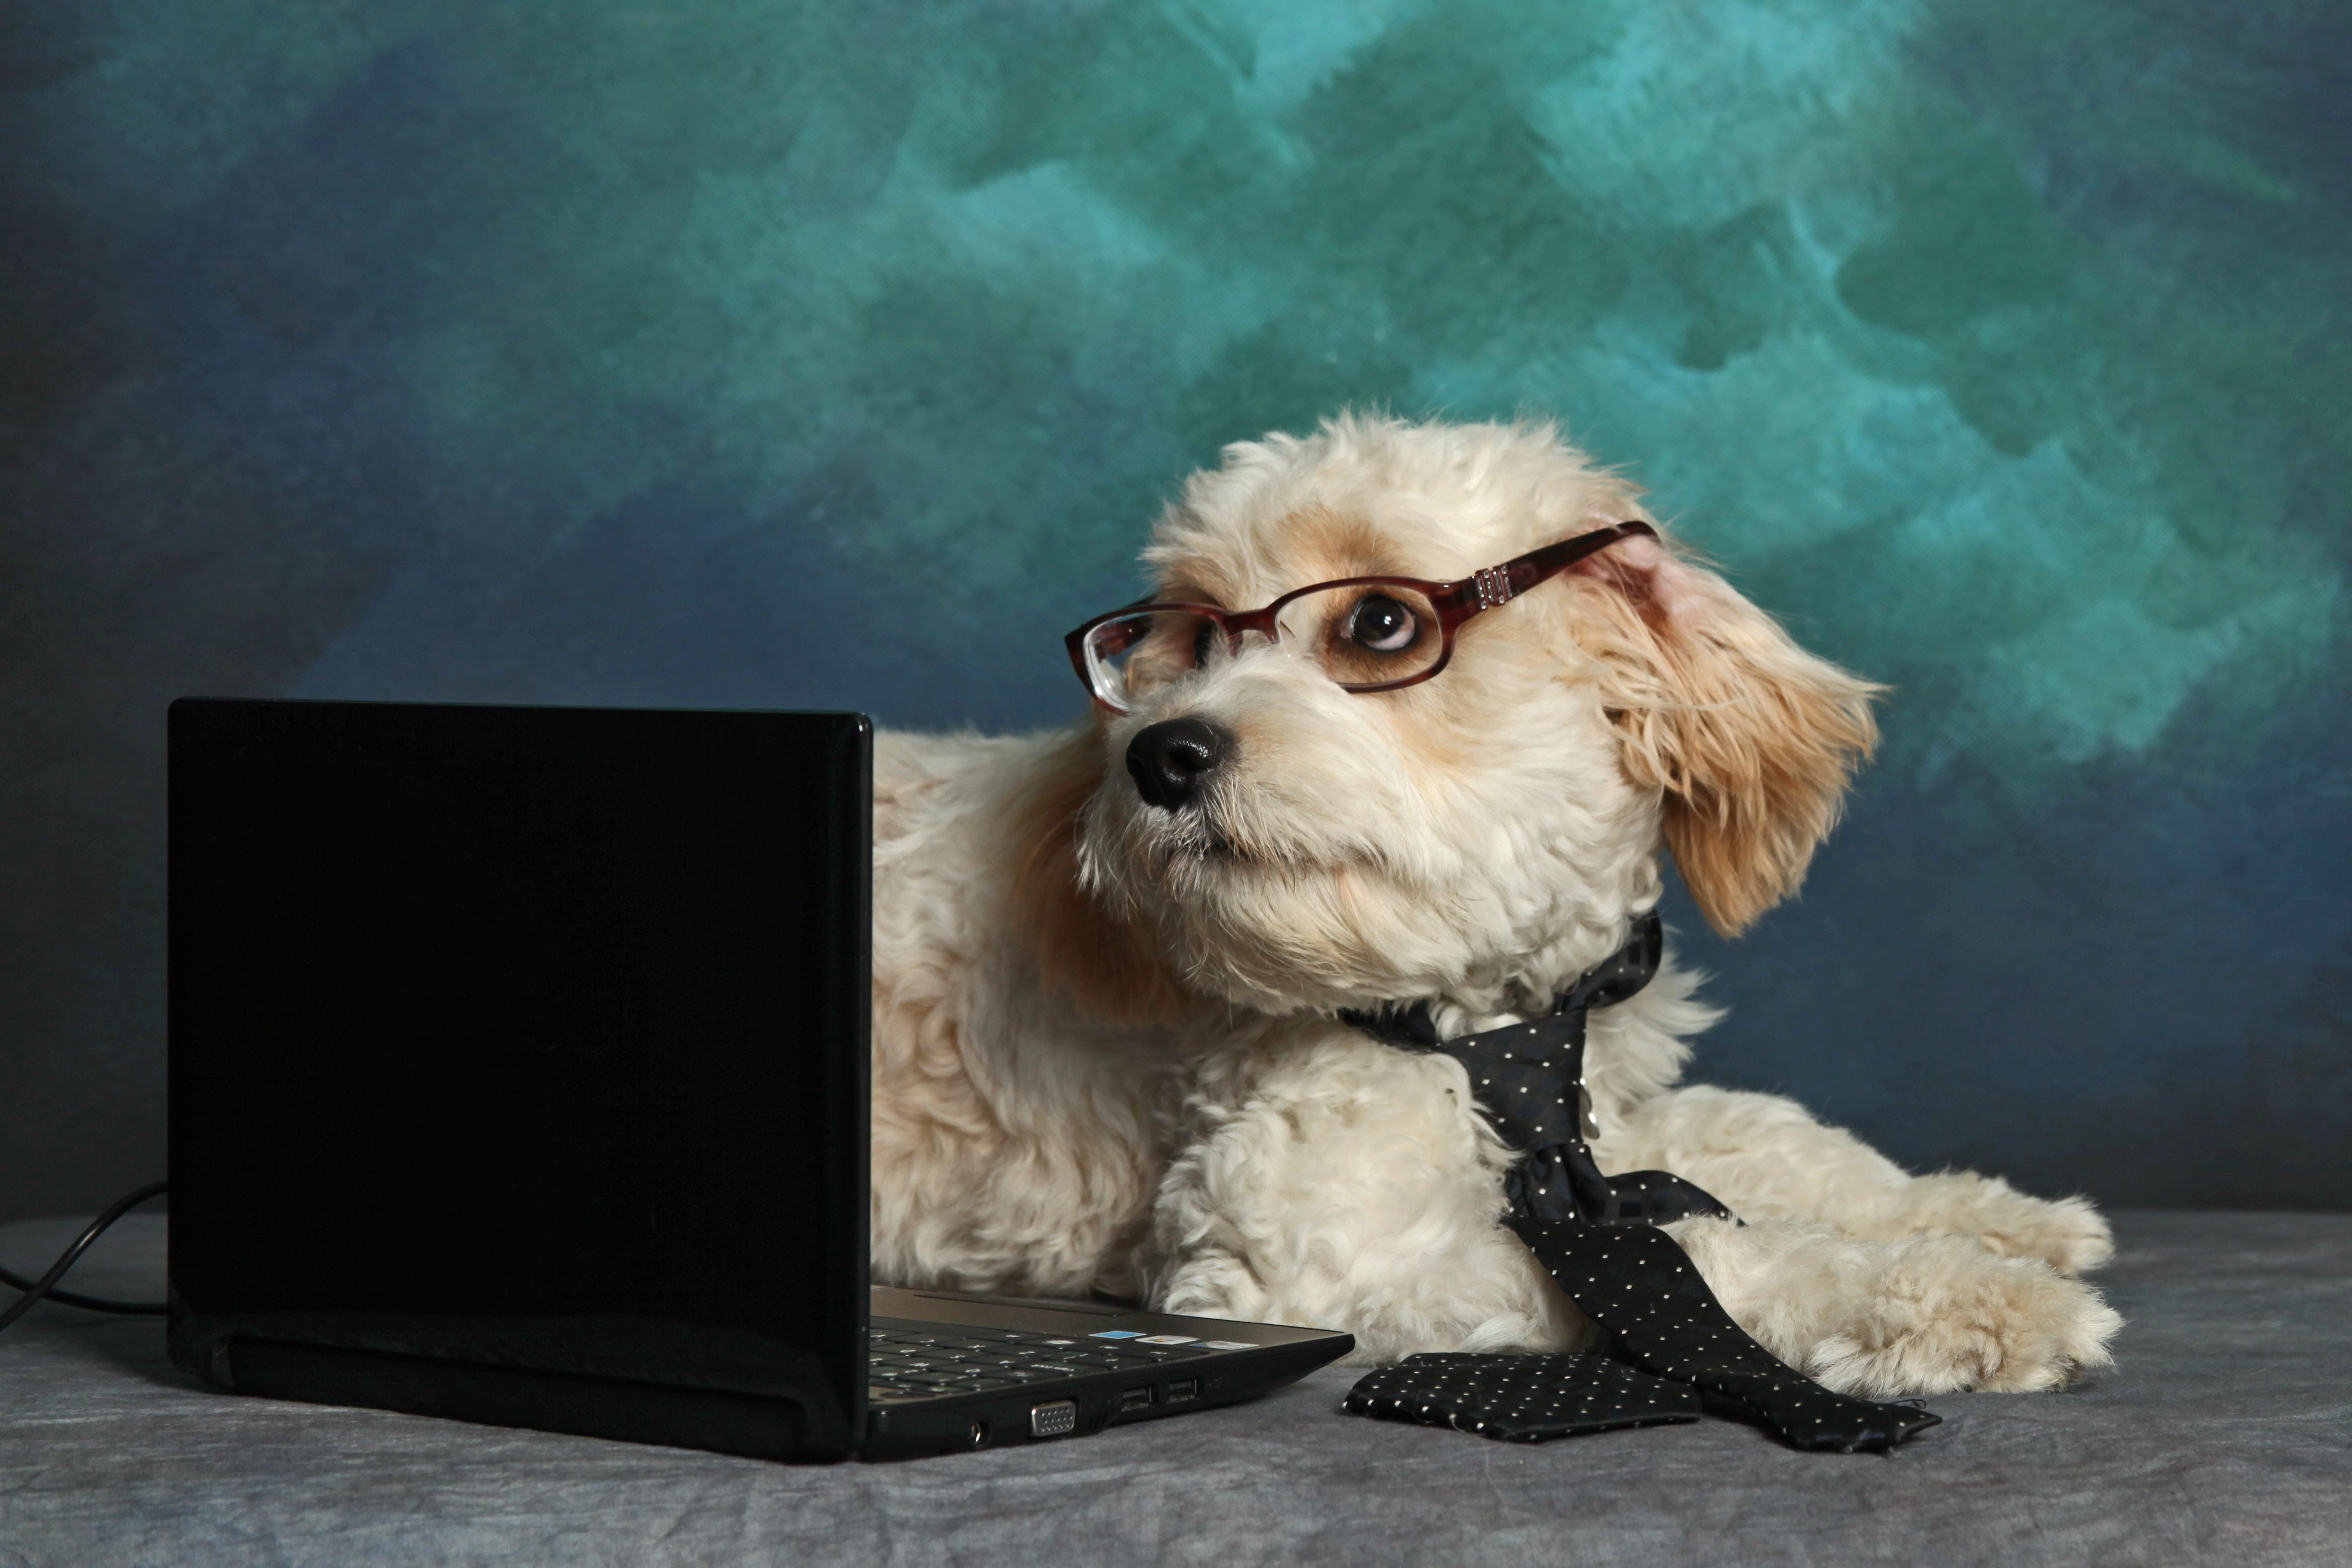 Dog Wearing Eyeglasses And Tie Sitting With Laptop Against Wall